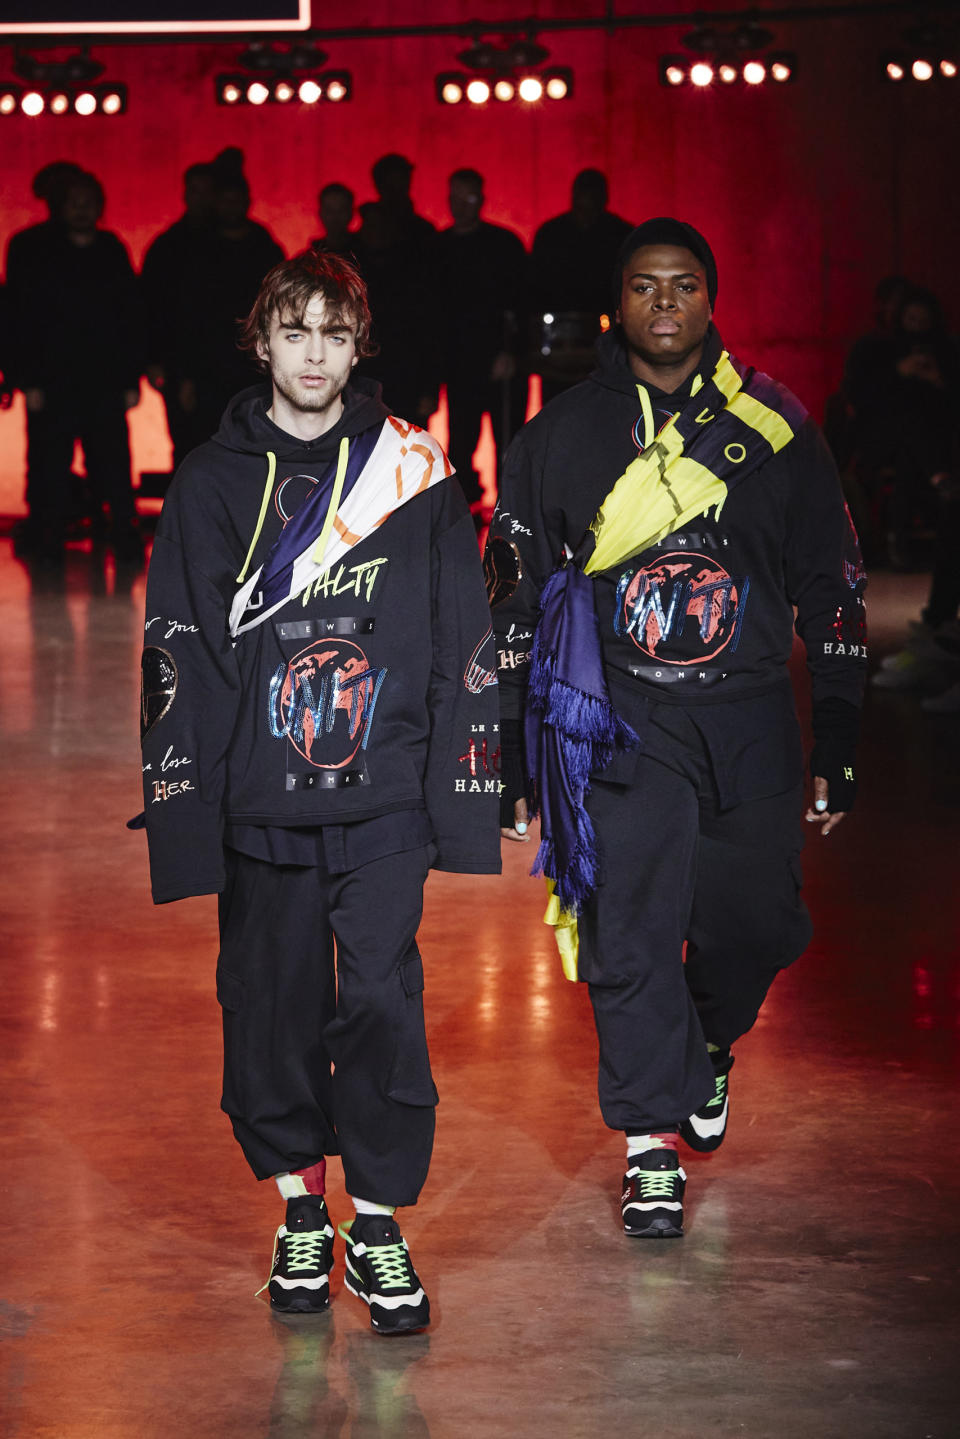 Lennon Gallagher walks the runway at the Tommy Hilfiger show during London Fashion Week. (Tommy Hilfiger)